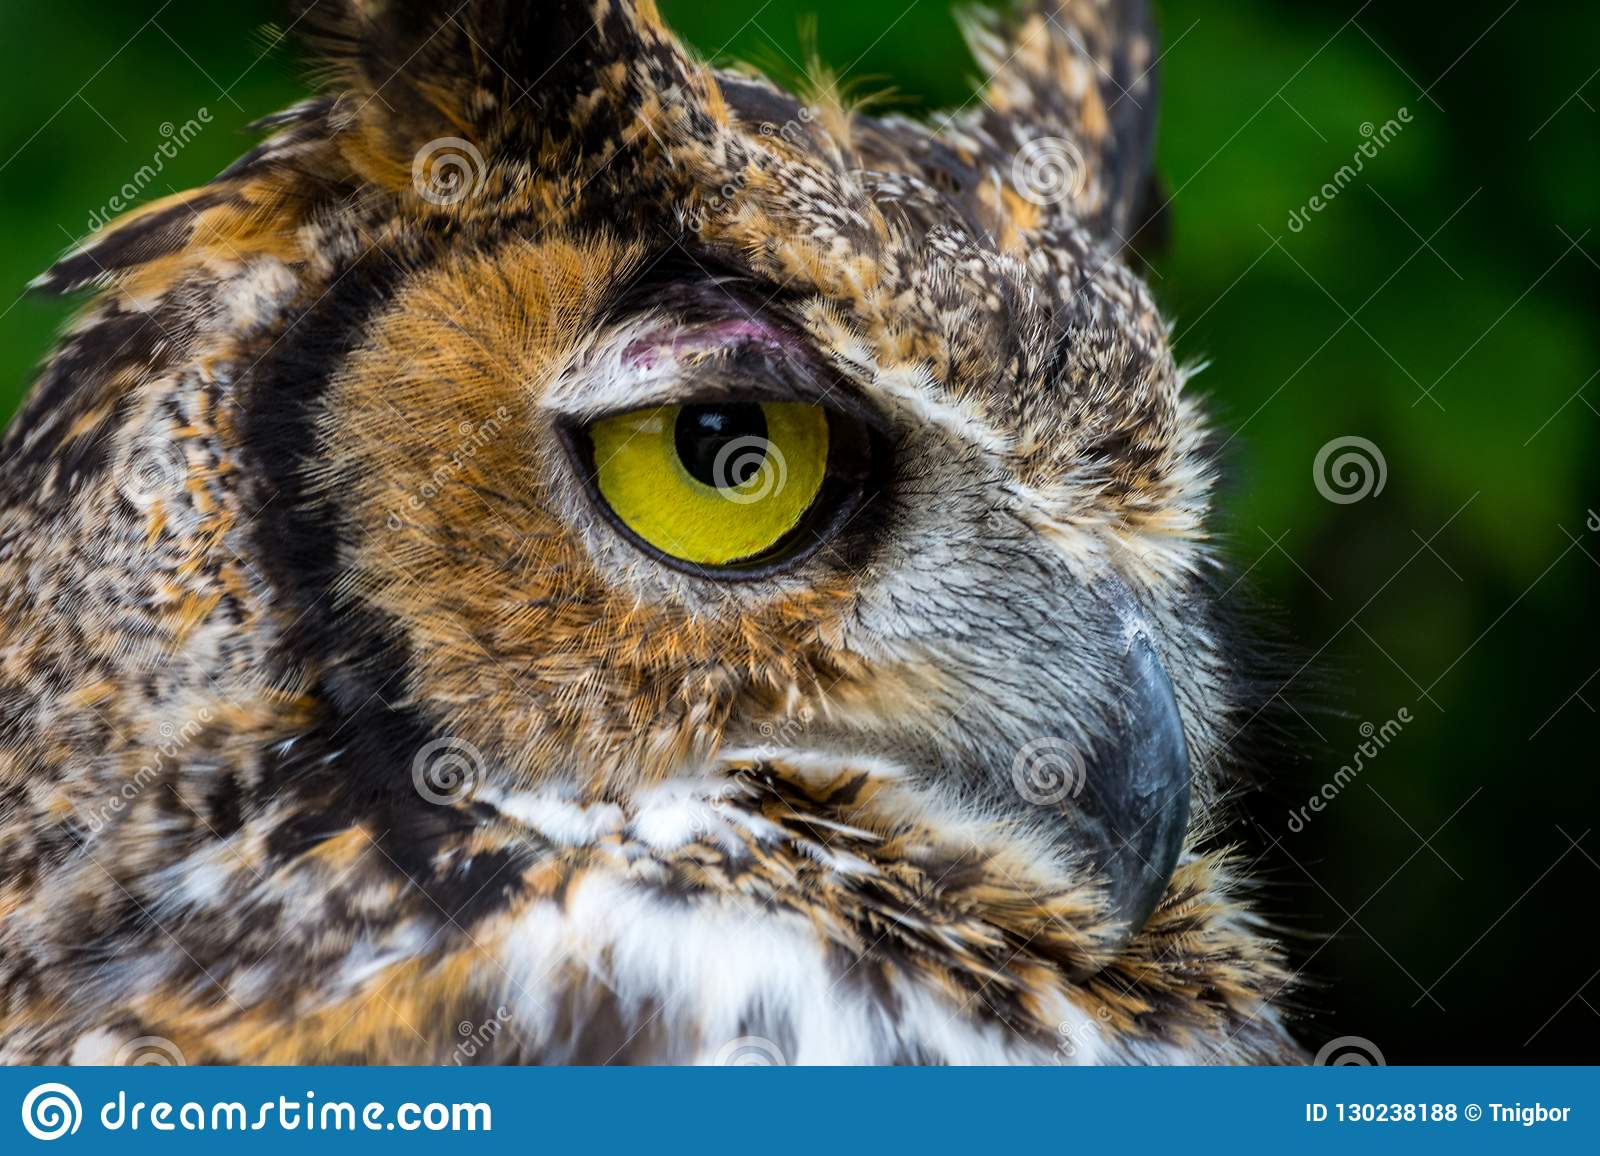 Great Horned Owl close up lookng to the right